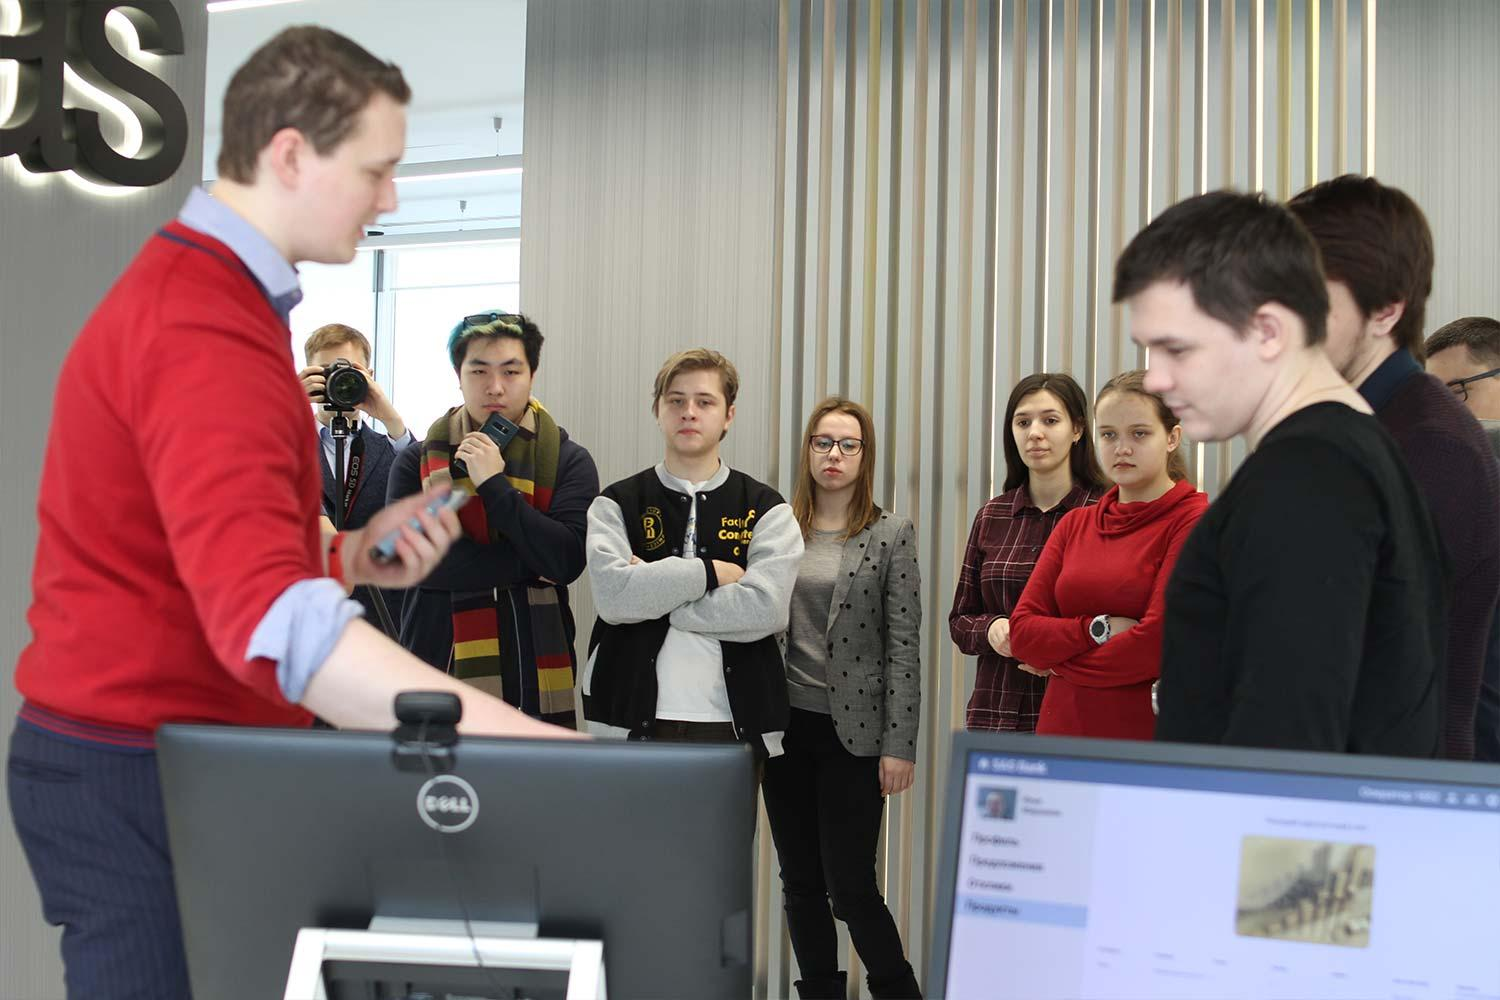 SAS employee shows students demo